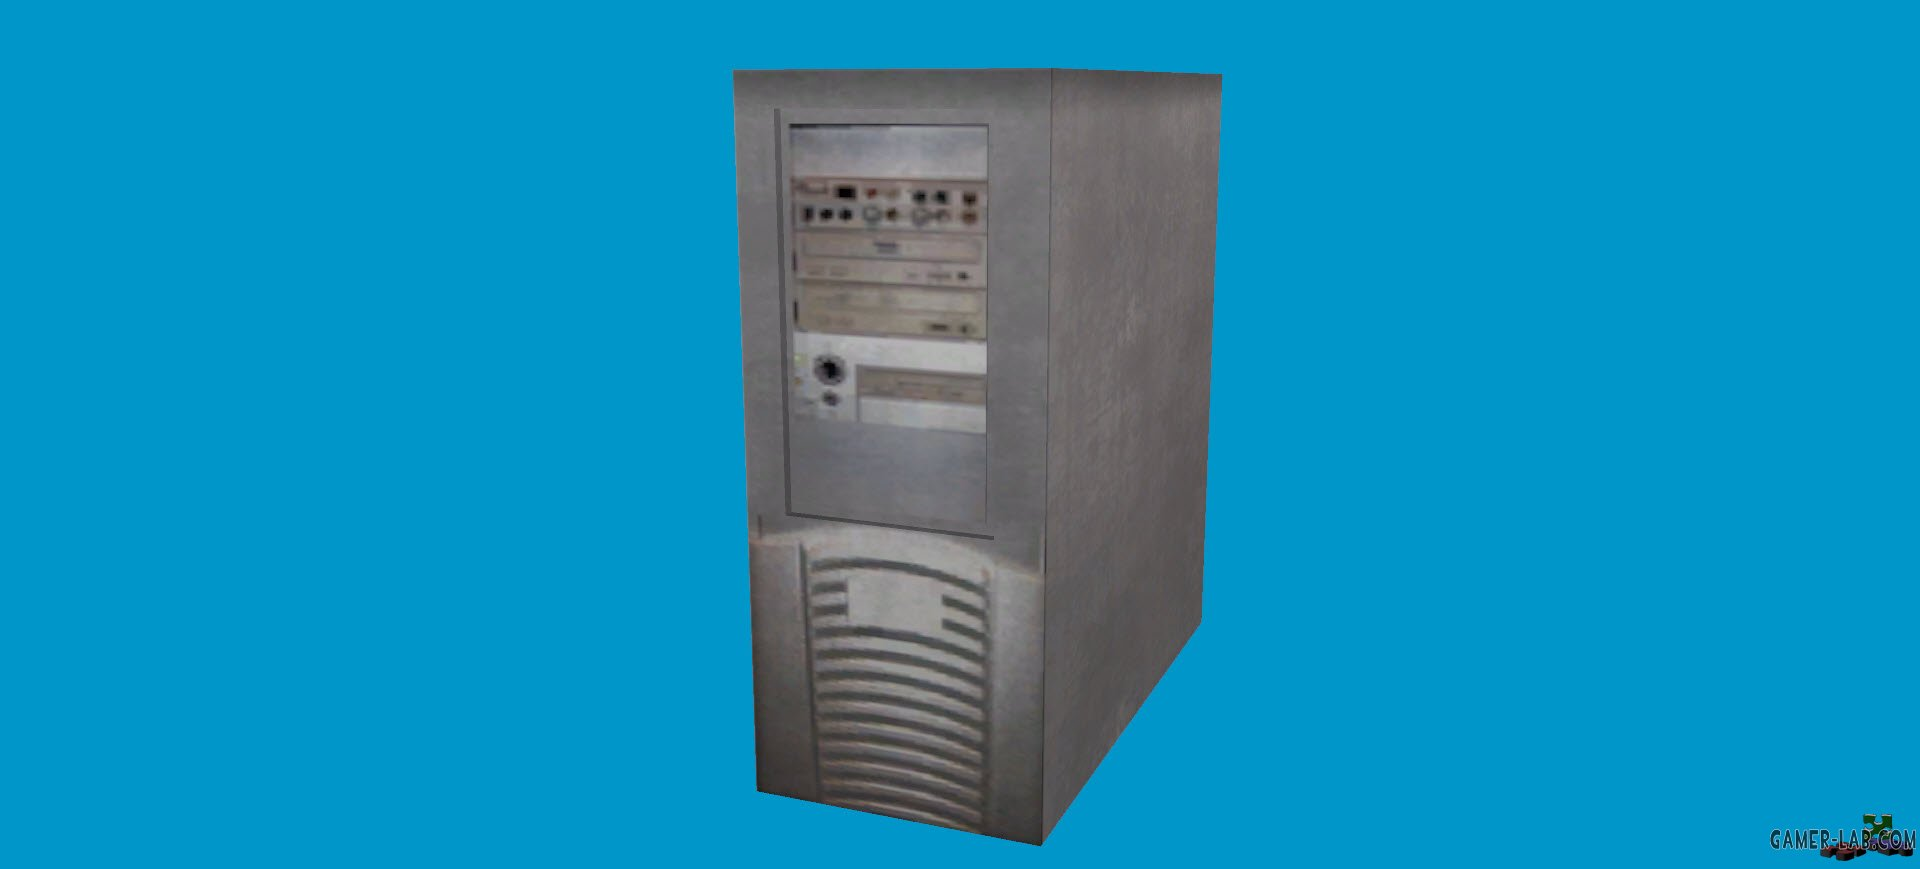 prop_computer_tower